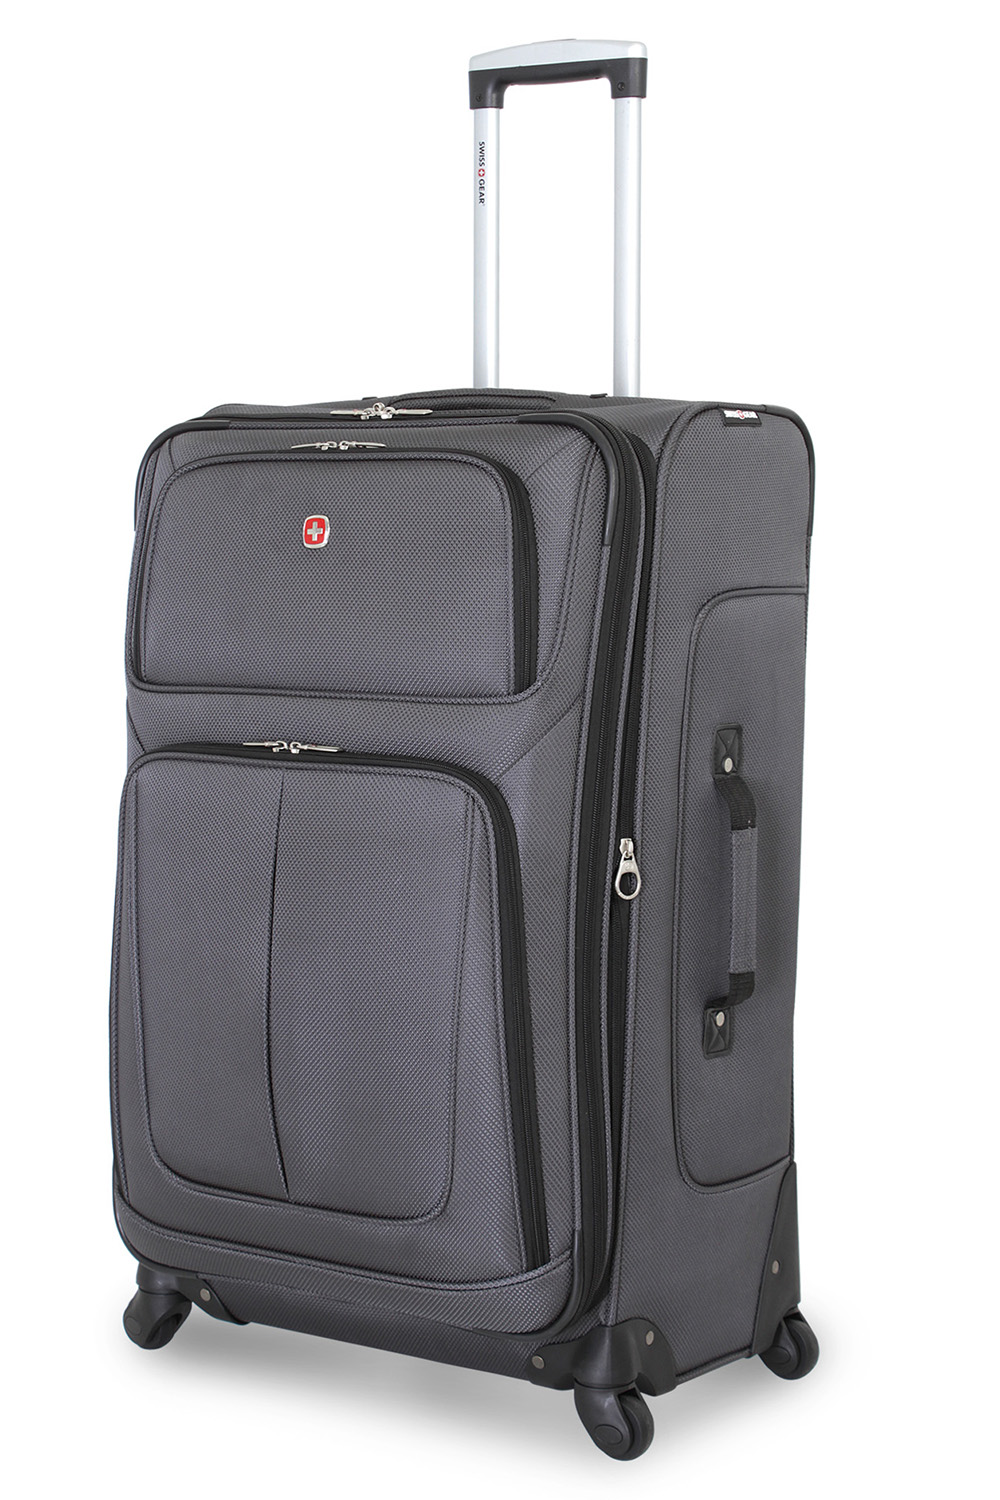 SWISSGEAR 6283 29 Expandable Spinner Luggage